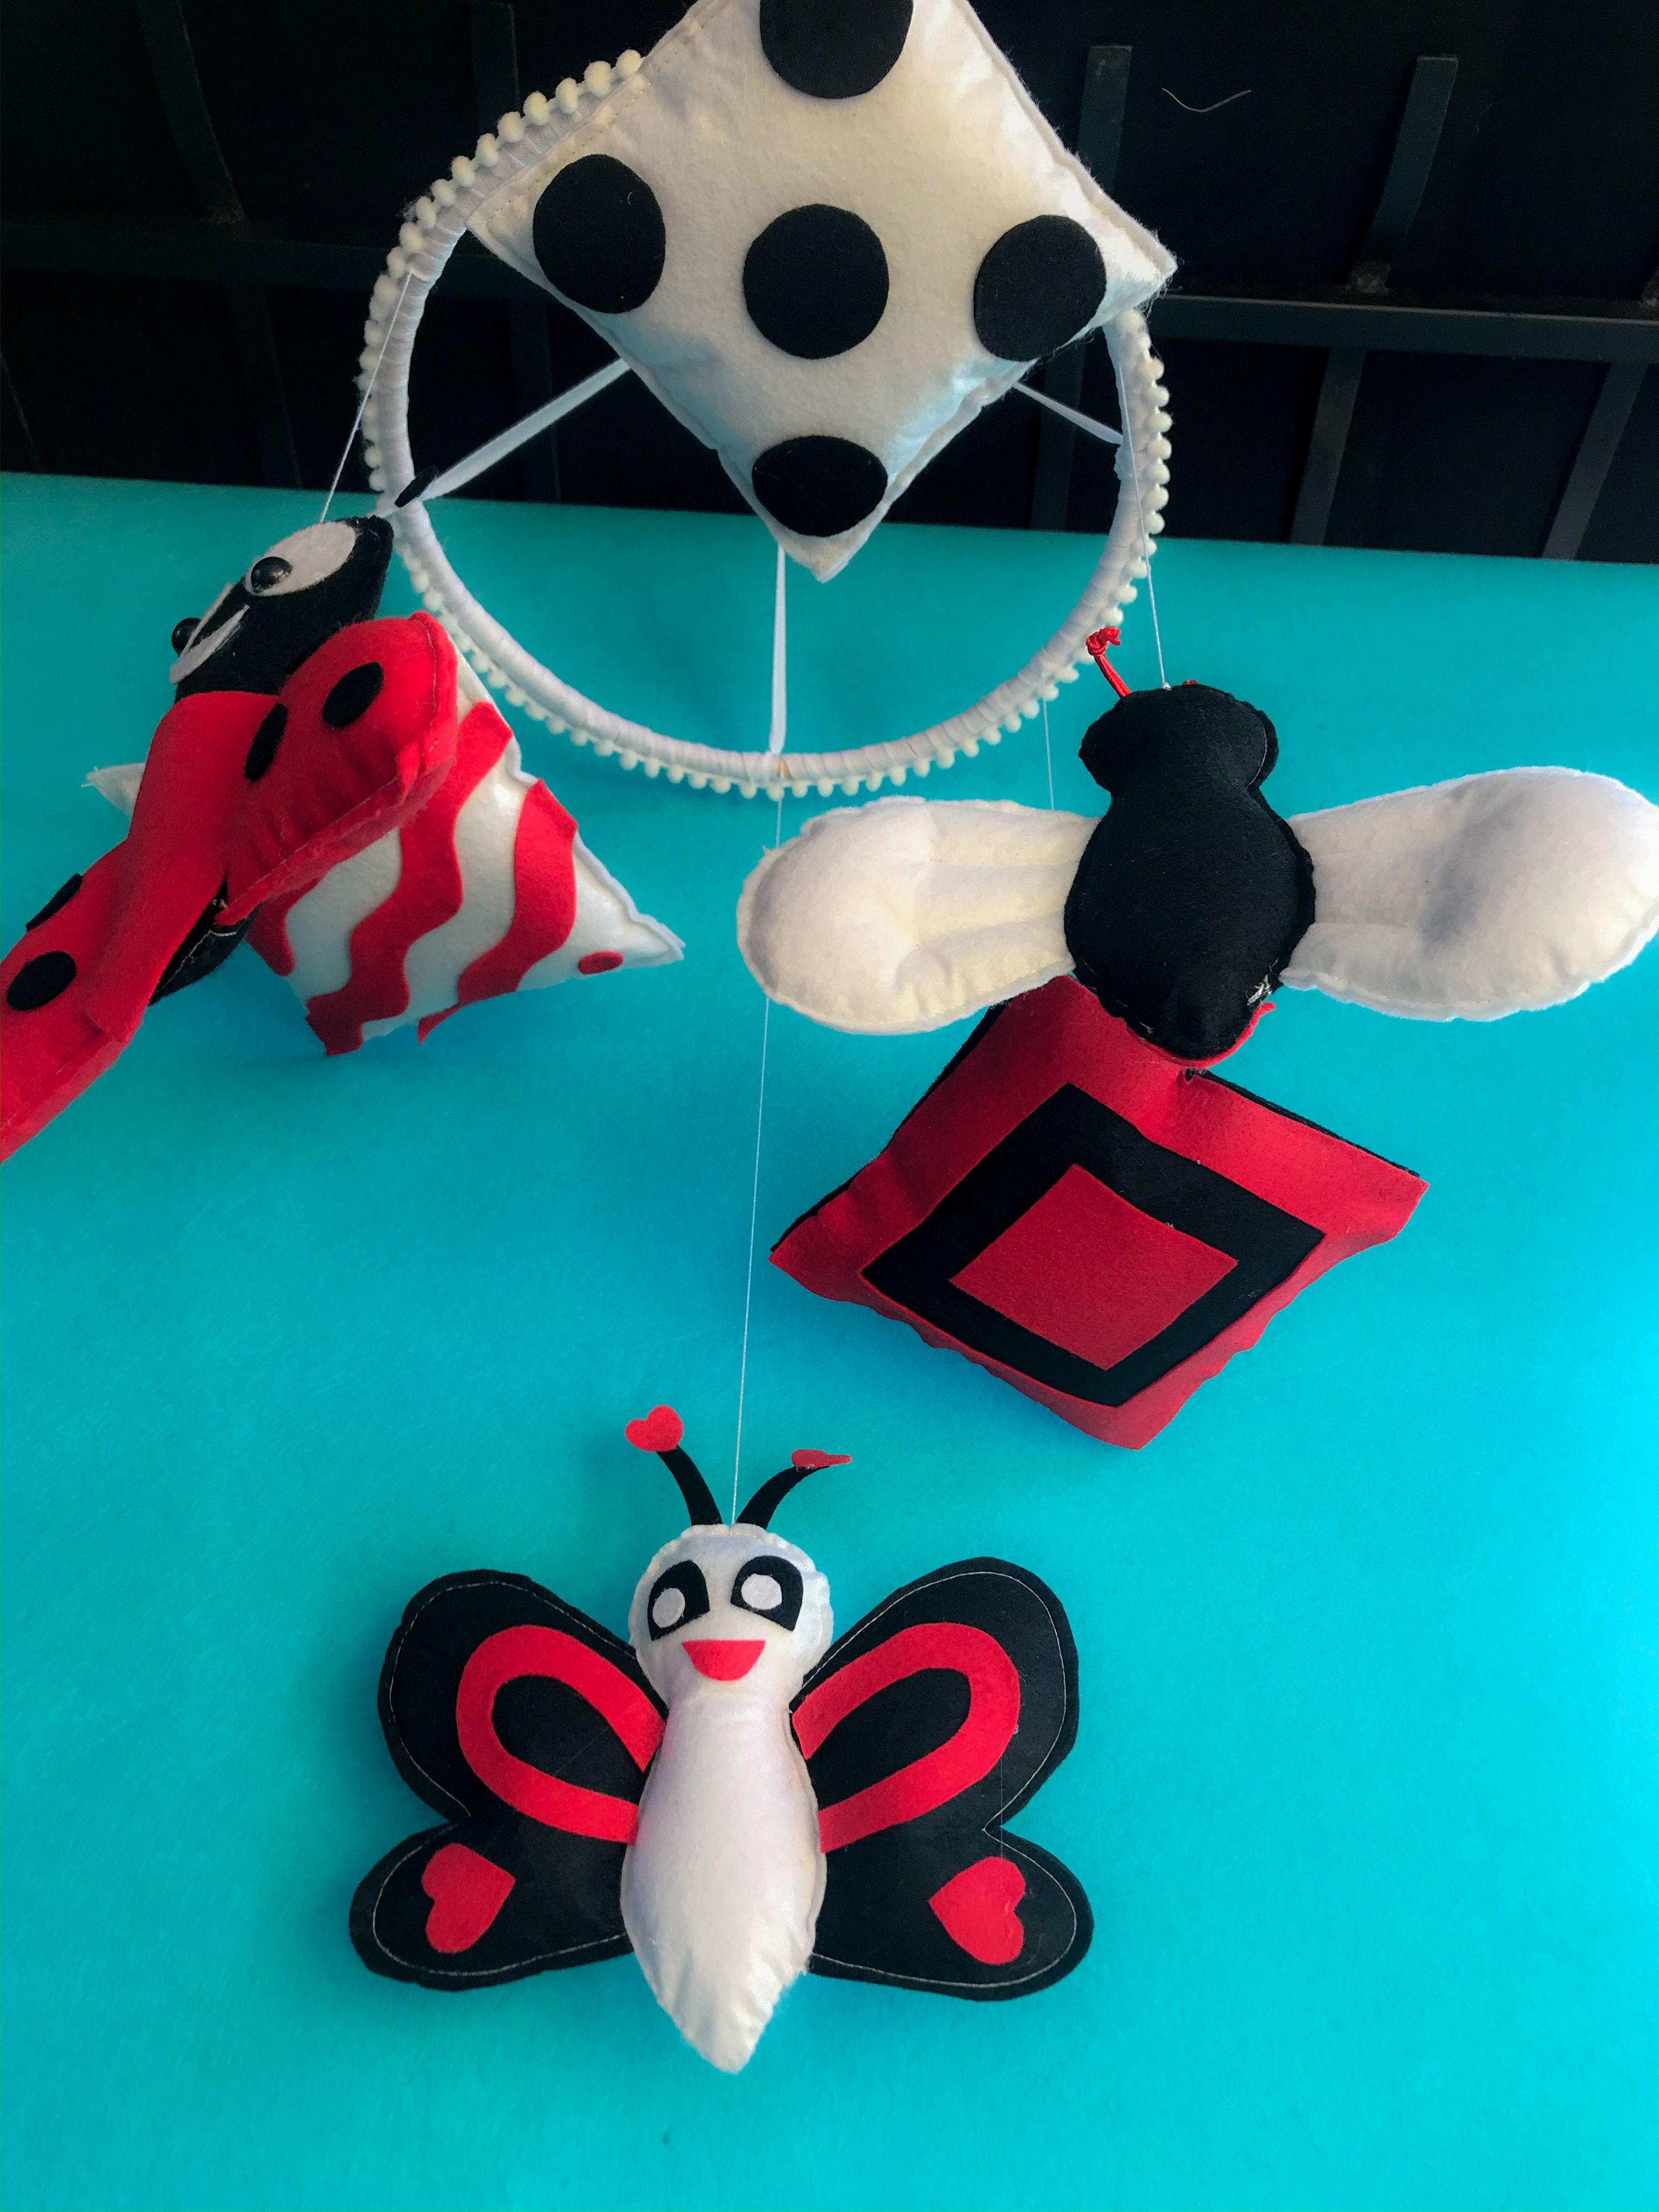 Custom Made Crib Mobile Nursery For For Toddlers With Black White Red Combination In 2020 Crib Mobile Felt Crafts Crafts